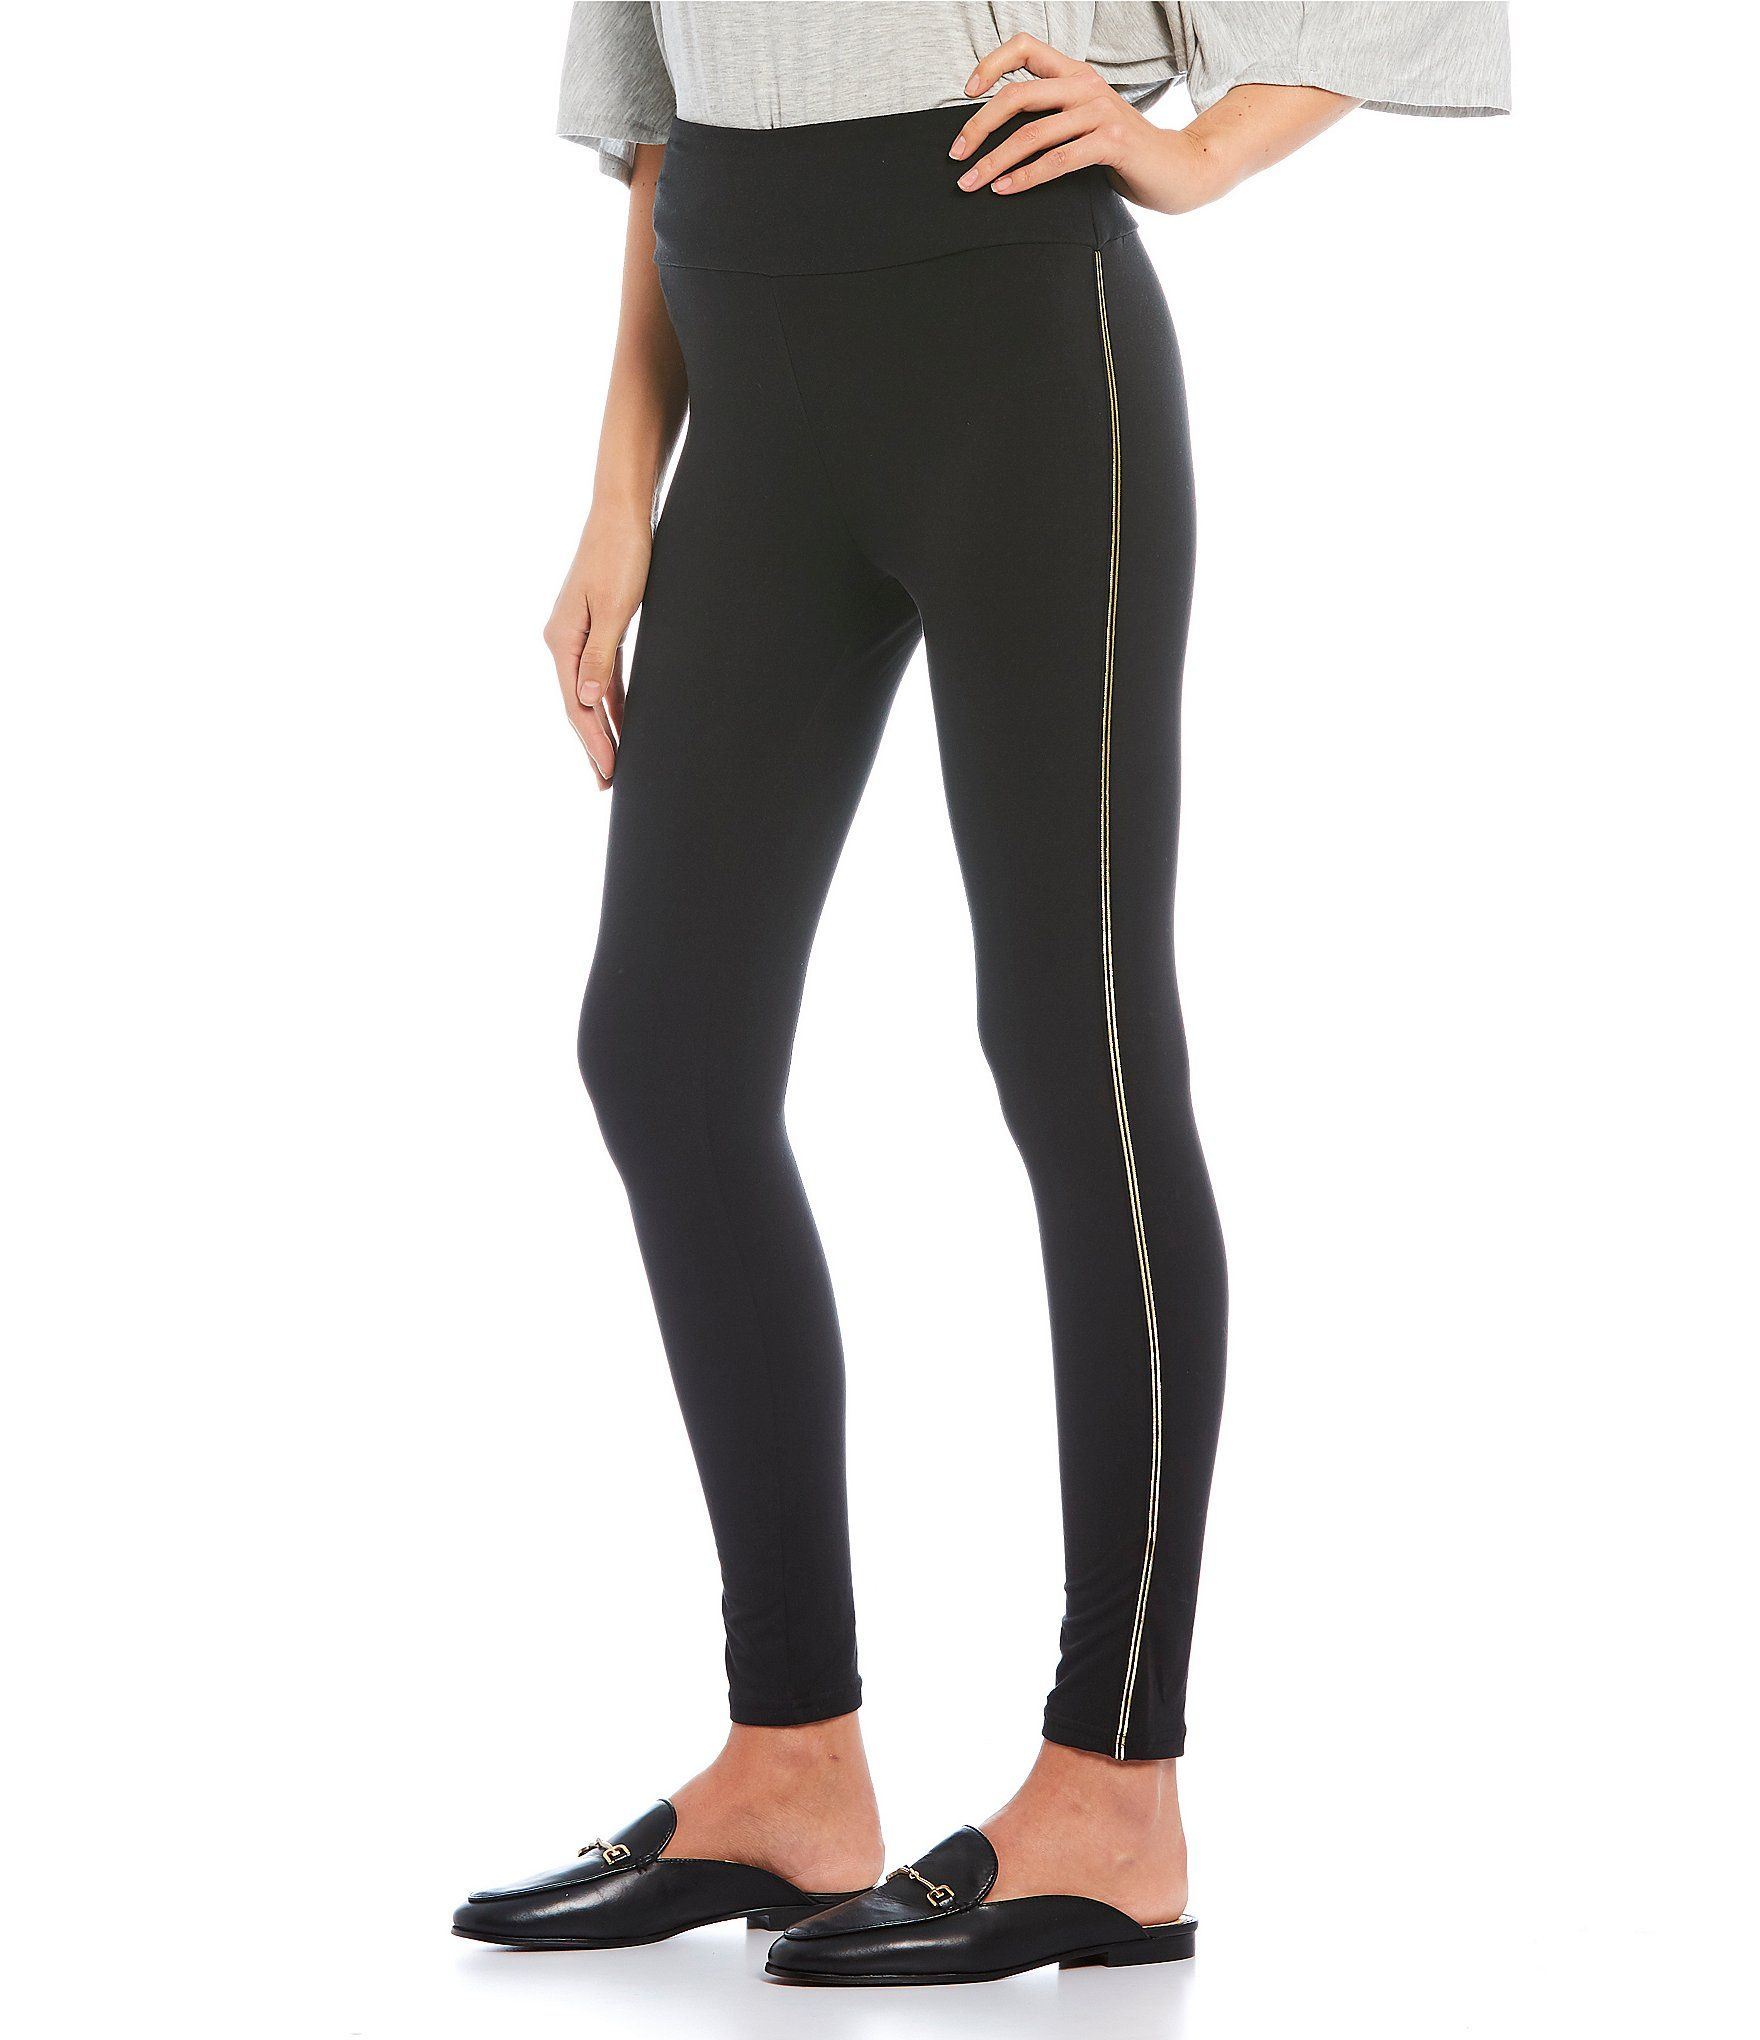 Fornia Peached High Rise Gold Side Stripe Leggings - Black/Stripe XS #stripedleggings